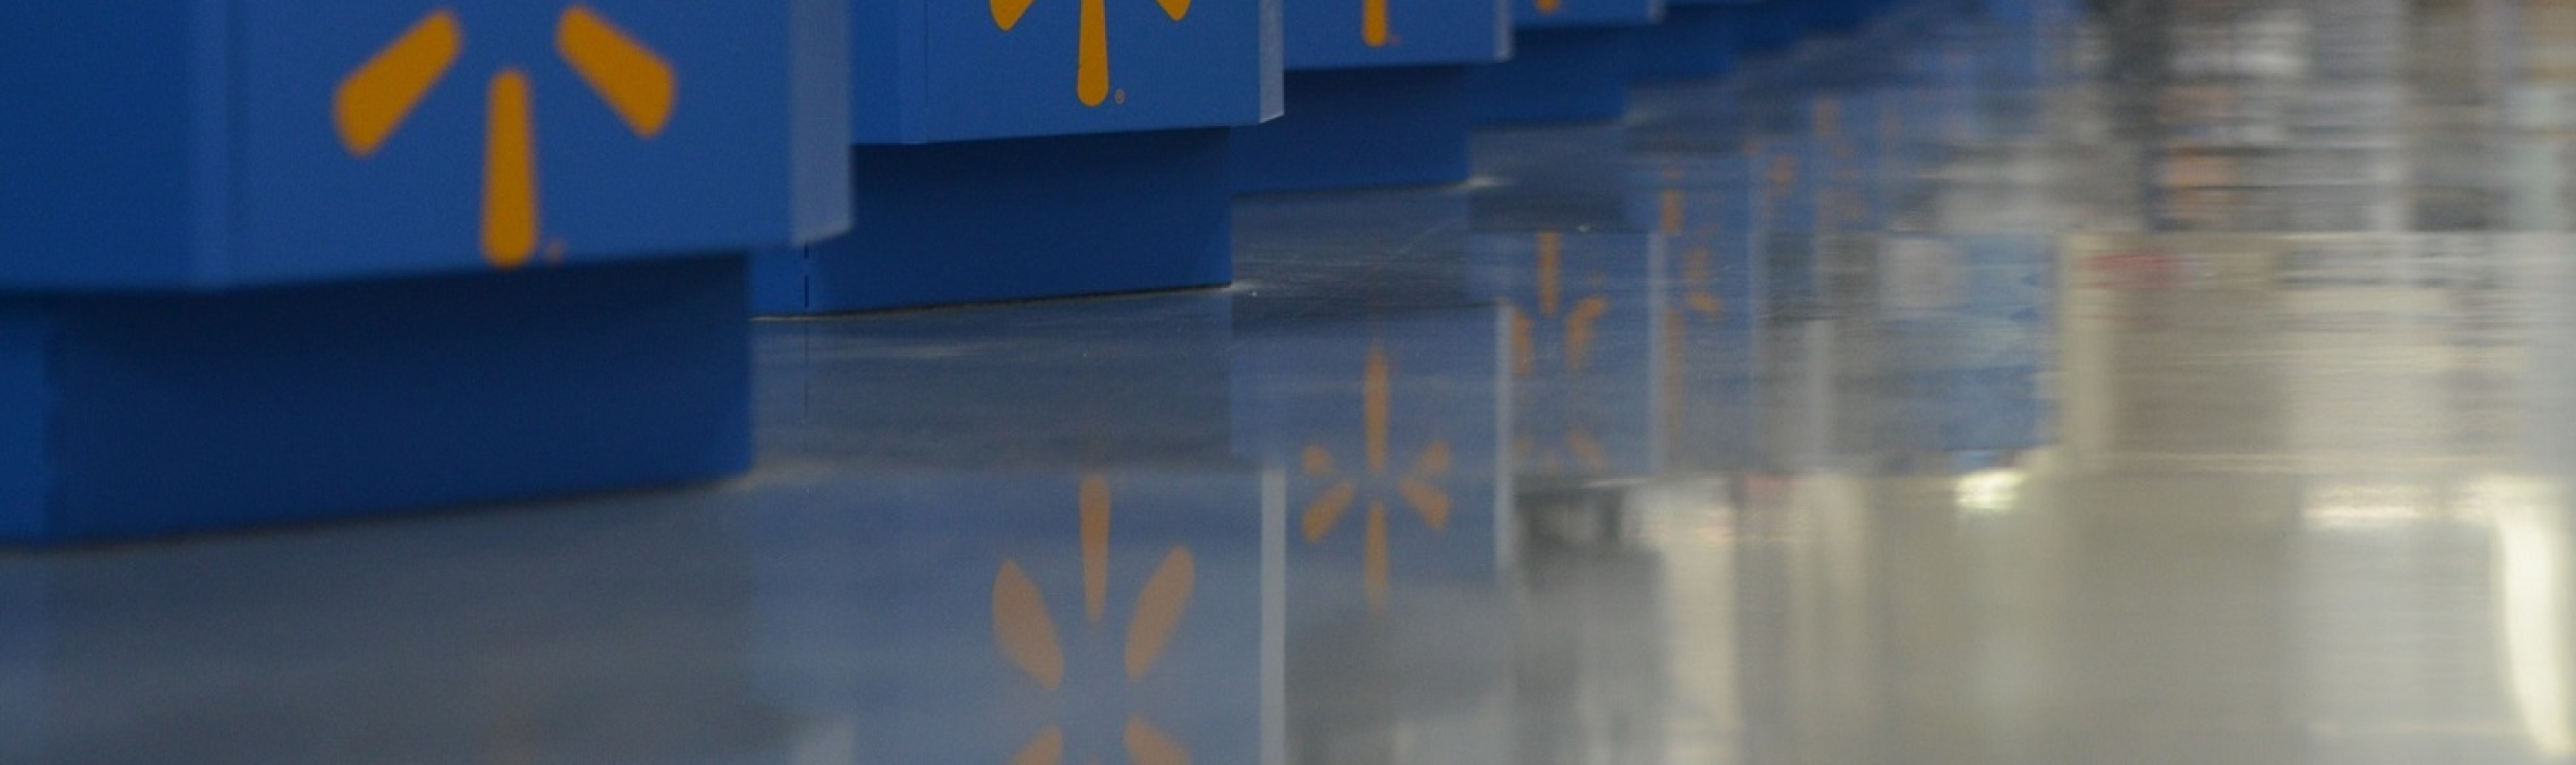 is walmart giving away $1000 gift cards